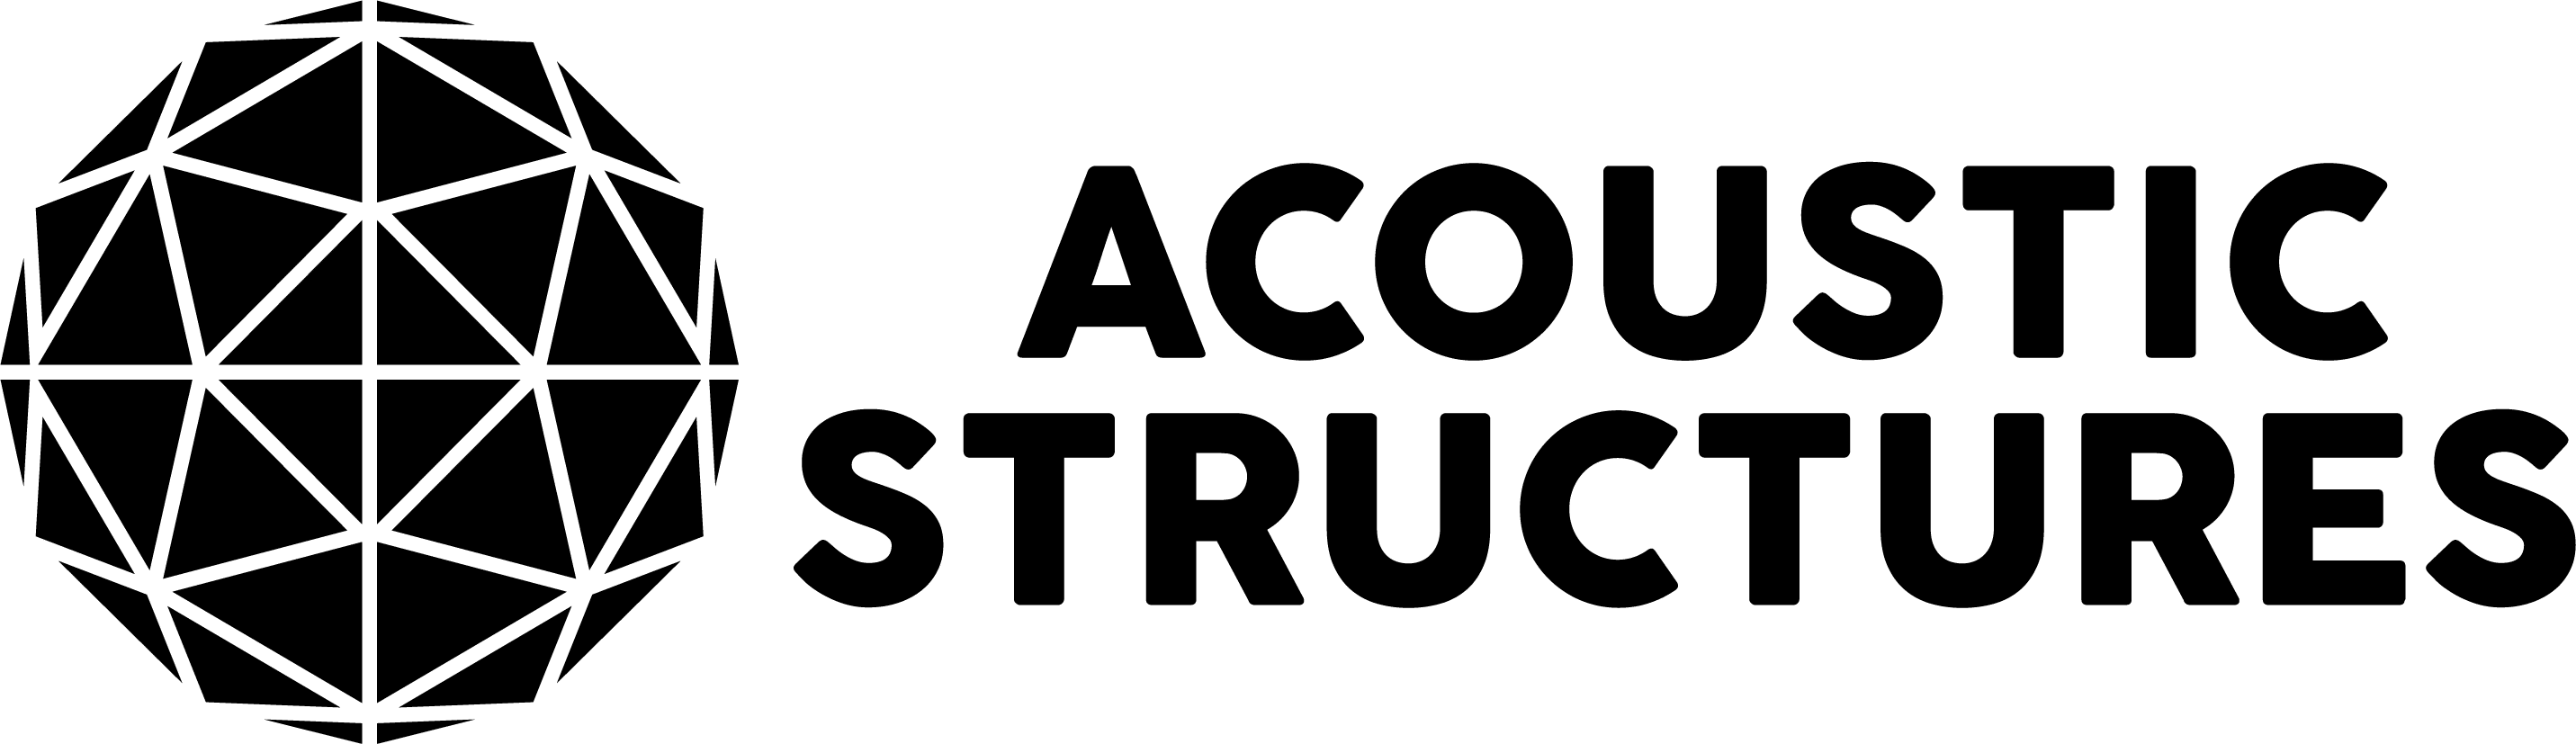 Acoustic Structures